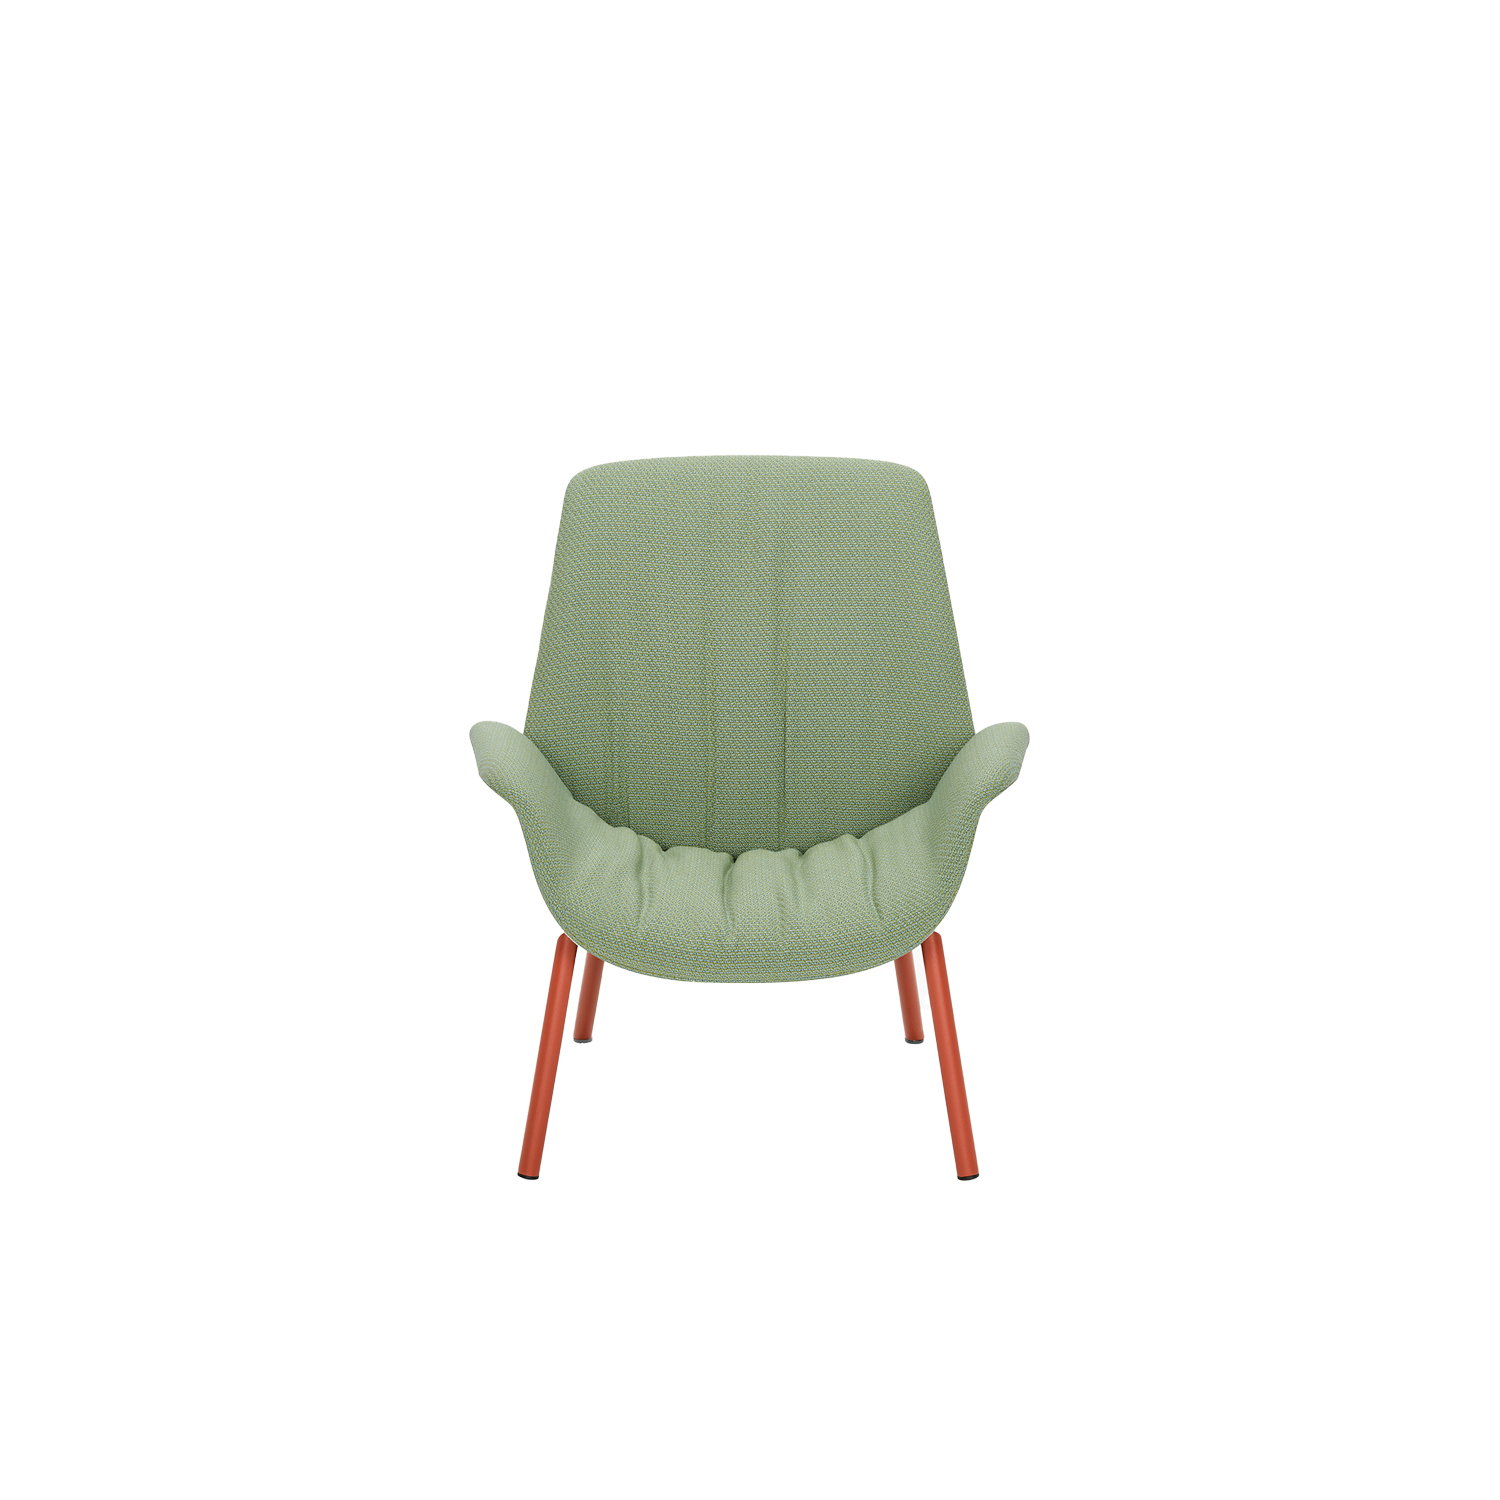 Ila Upholstered Lounge Chair - The new, elegant and high-quality Ila is a refined piece of furniture with a strong personality, expressing utmost comfort, softness and sensuality. Its curved, flexible lines trace out a comfortable and enveloping silhouette. Armchair with outer shell in rigid polyurethane foam and flexible polyurethane foam for the inner shell. Four-legs Ø 30 mm steel tube frame. | Matter of Stuff